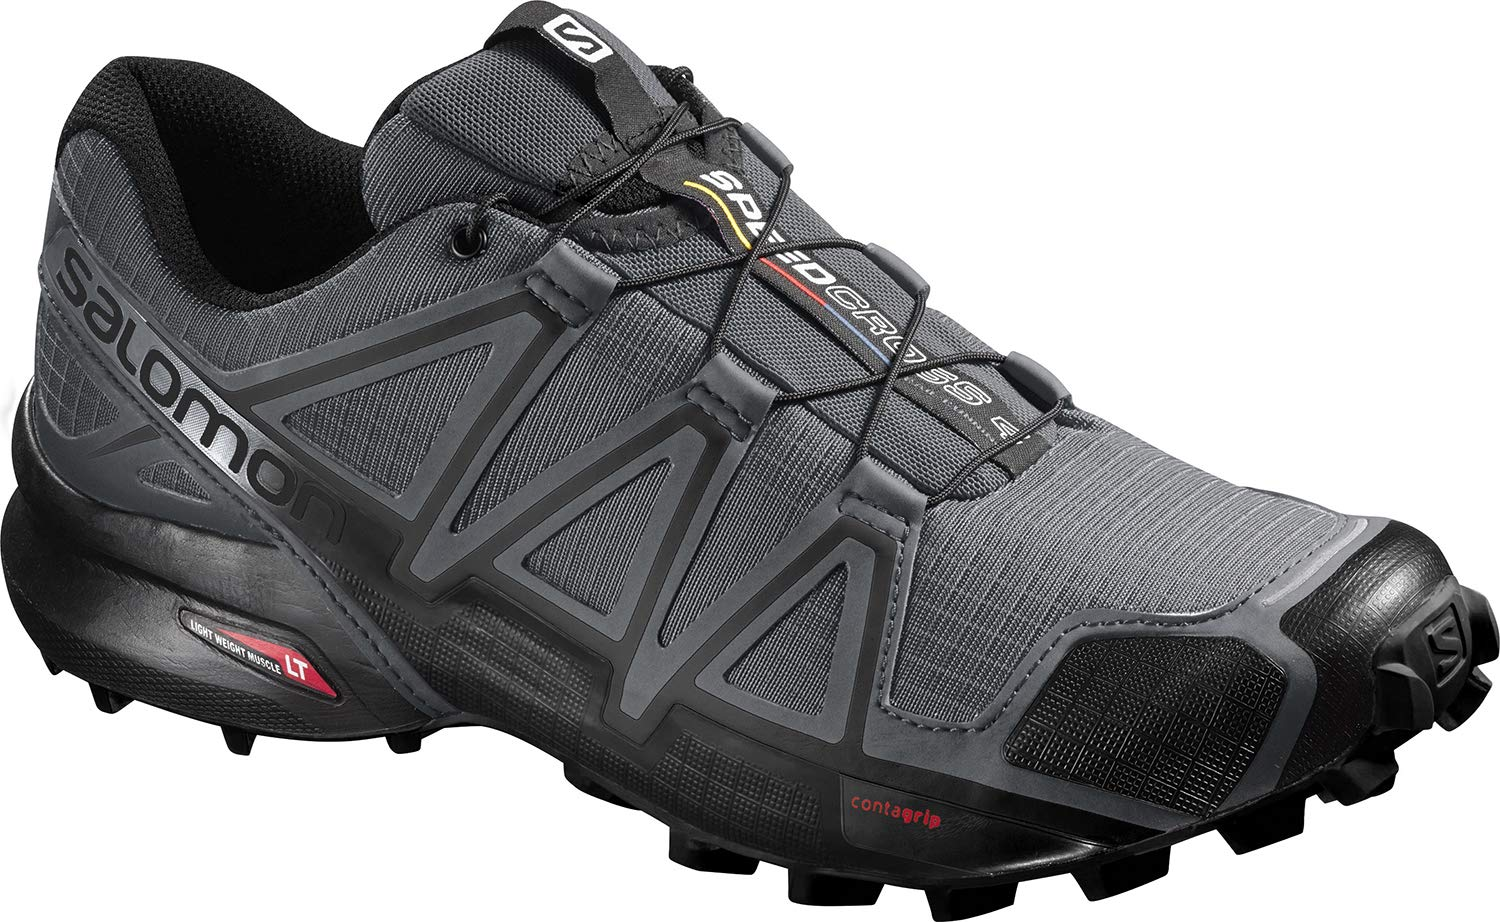 Salomon Men's Speedcross 4 Trail Runner, Dark Cloud, 11.5 M US by SALOMON